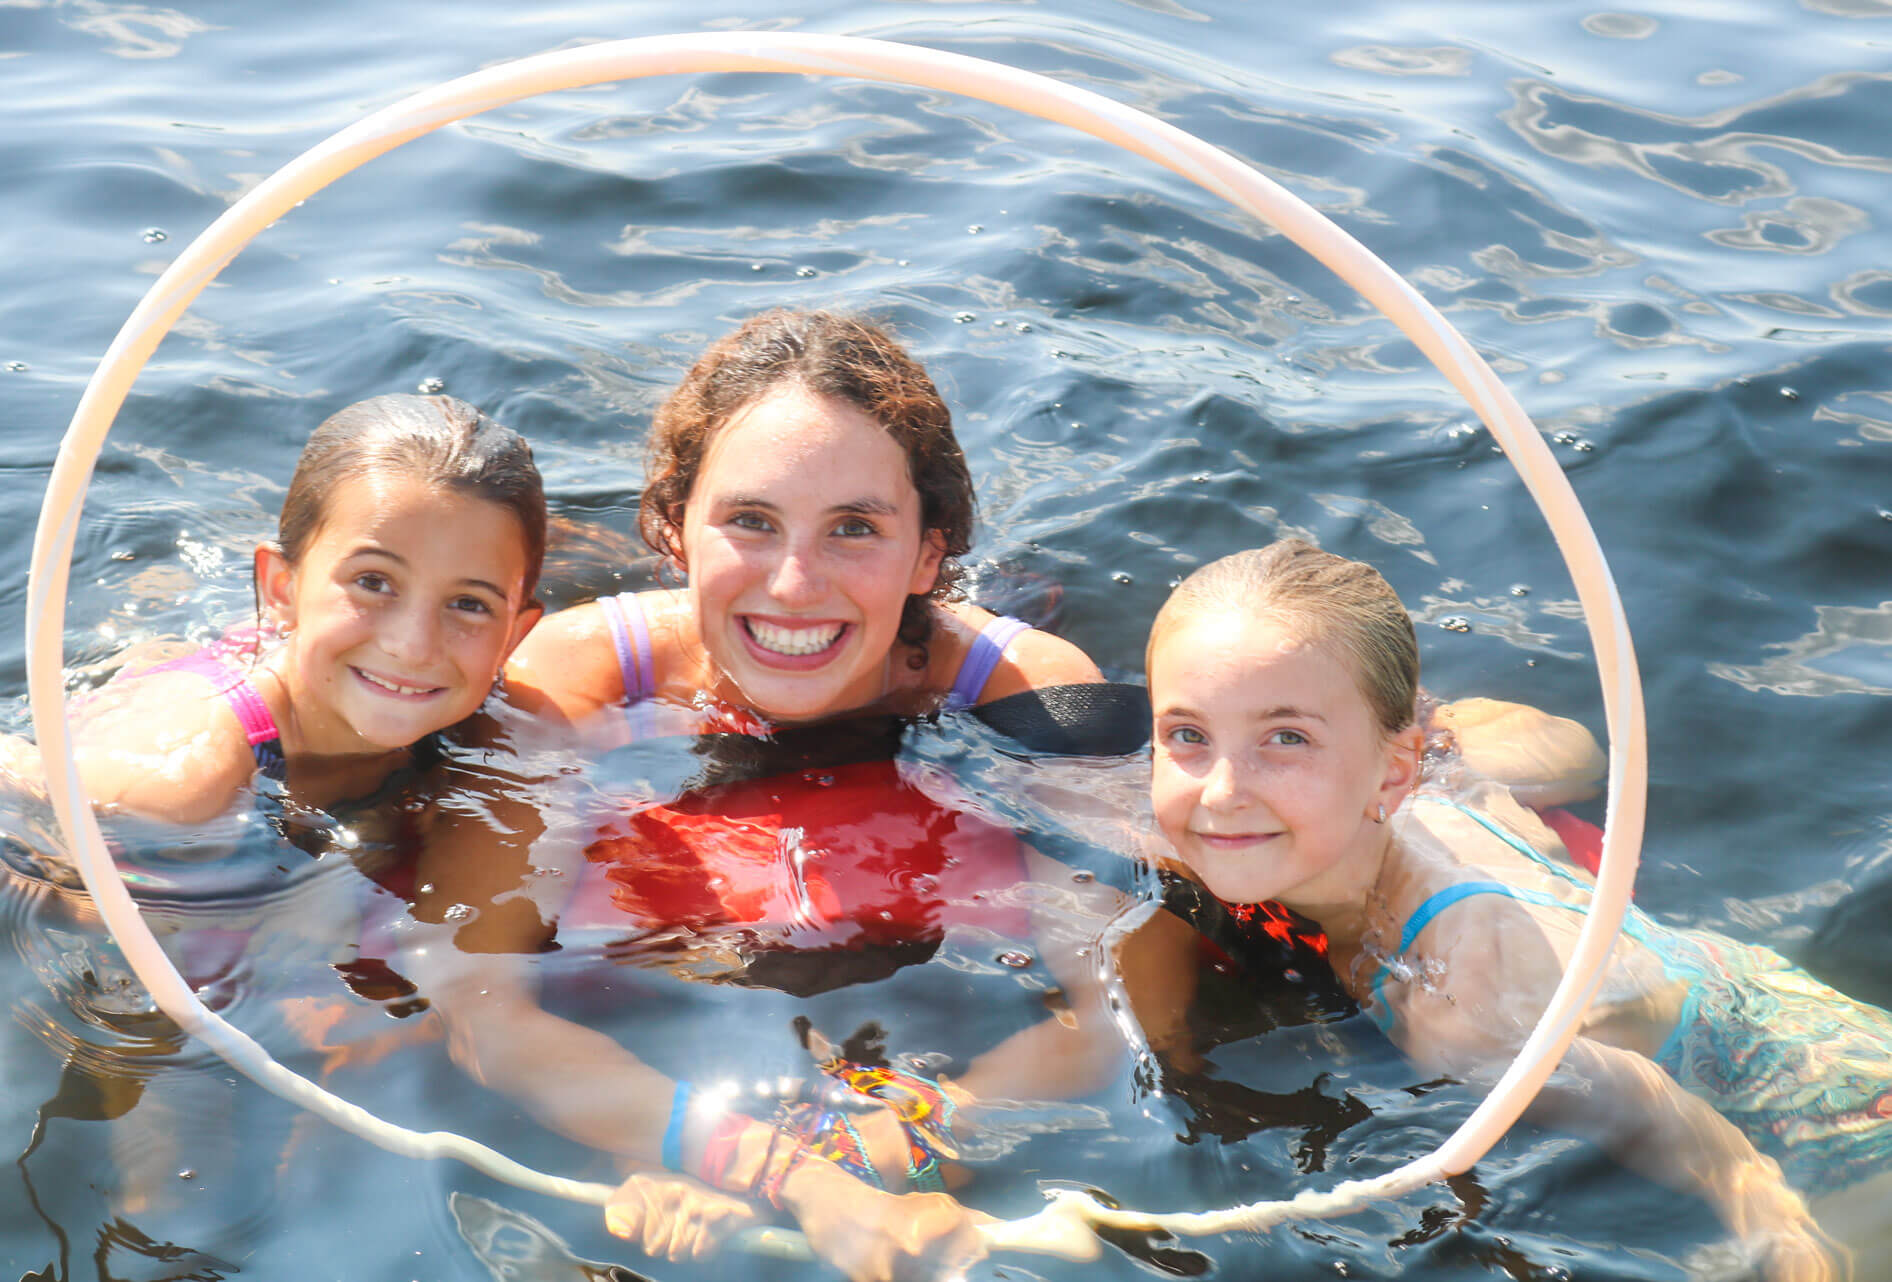 Two campers and counselor float in water